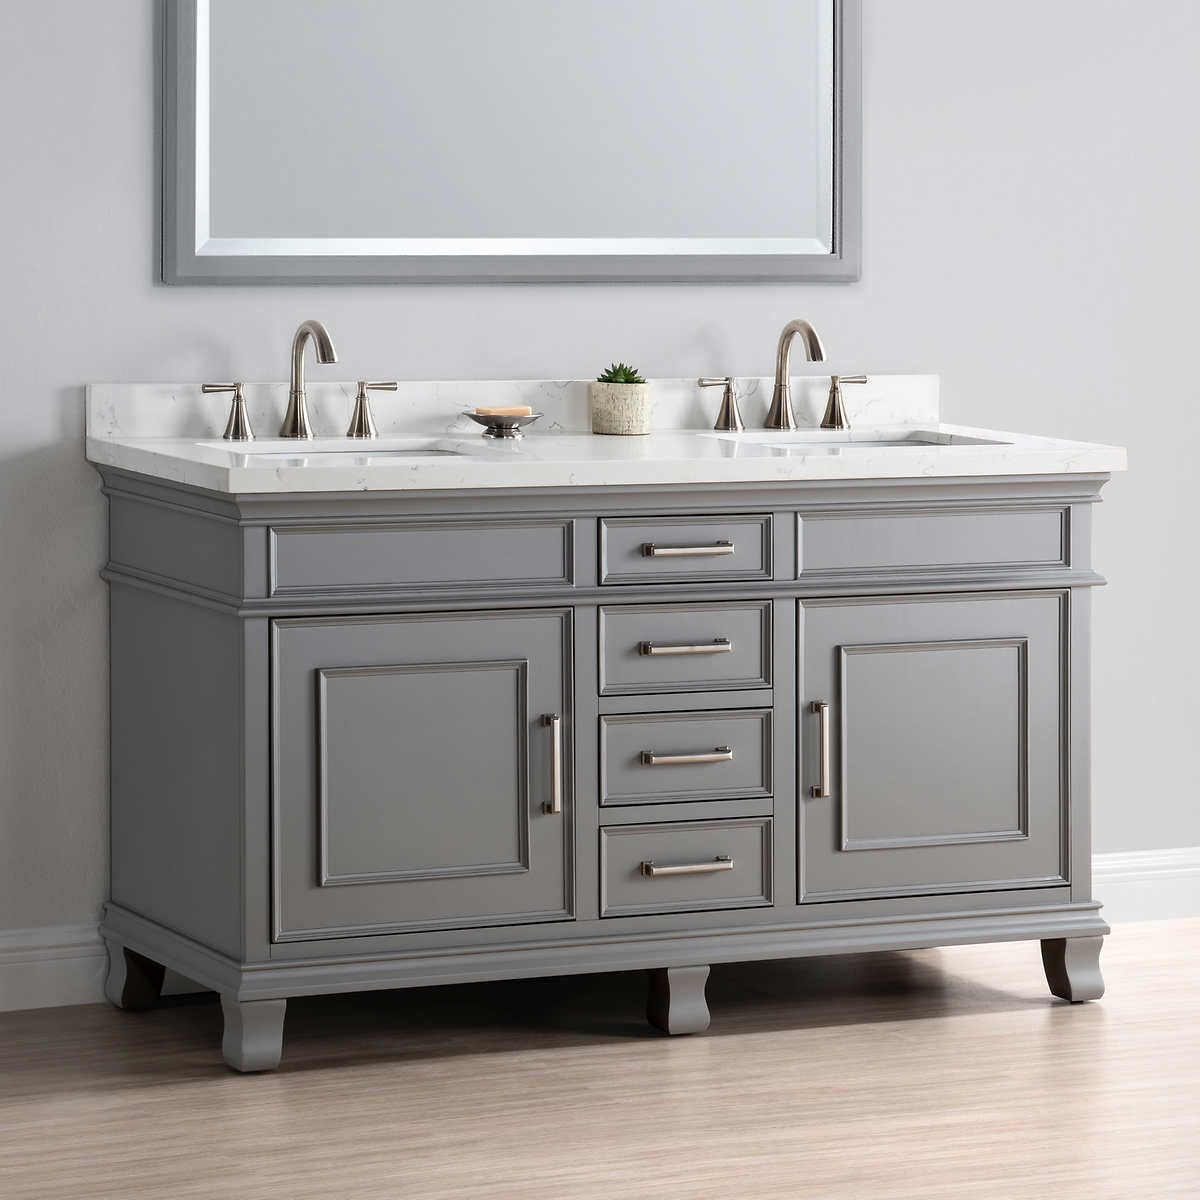 bathroom pinterest vanity bedroom double pin furniture sink